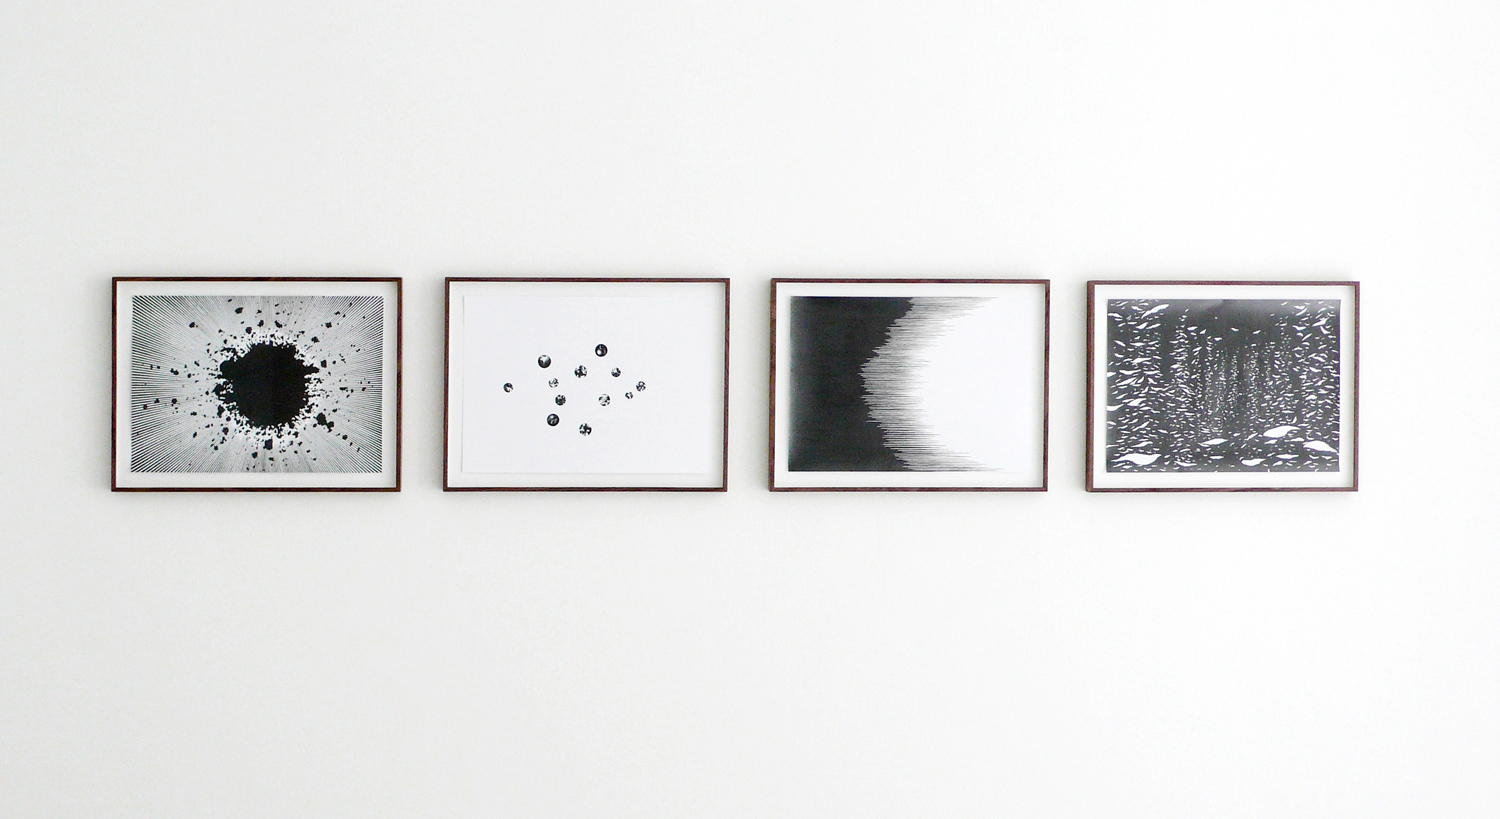 Visions, 2008, pencil on paper, each 29,7 x 42cm